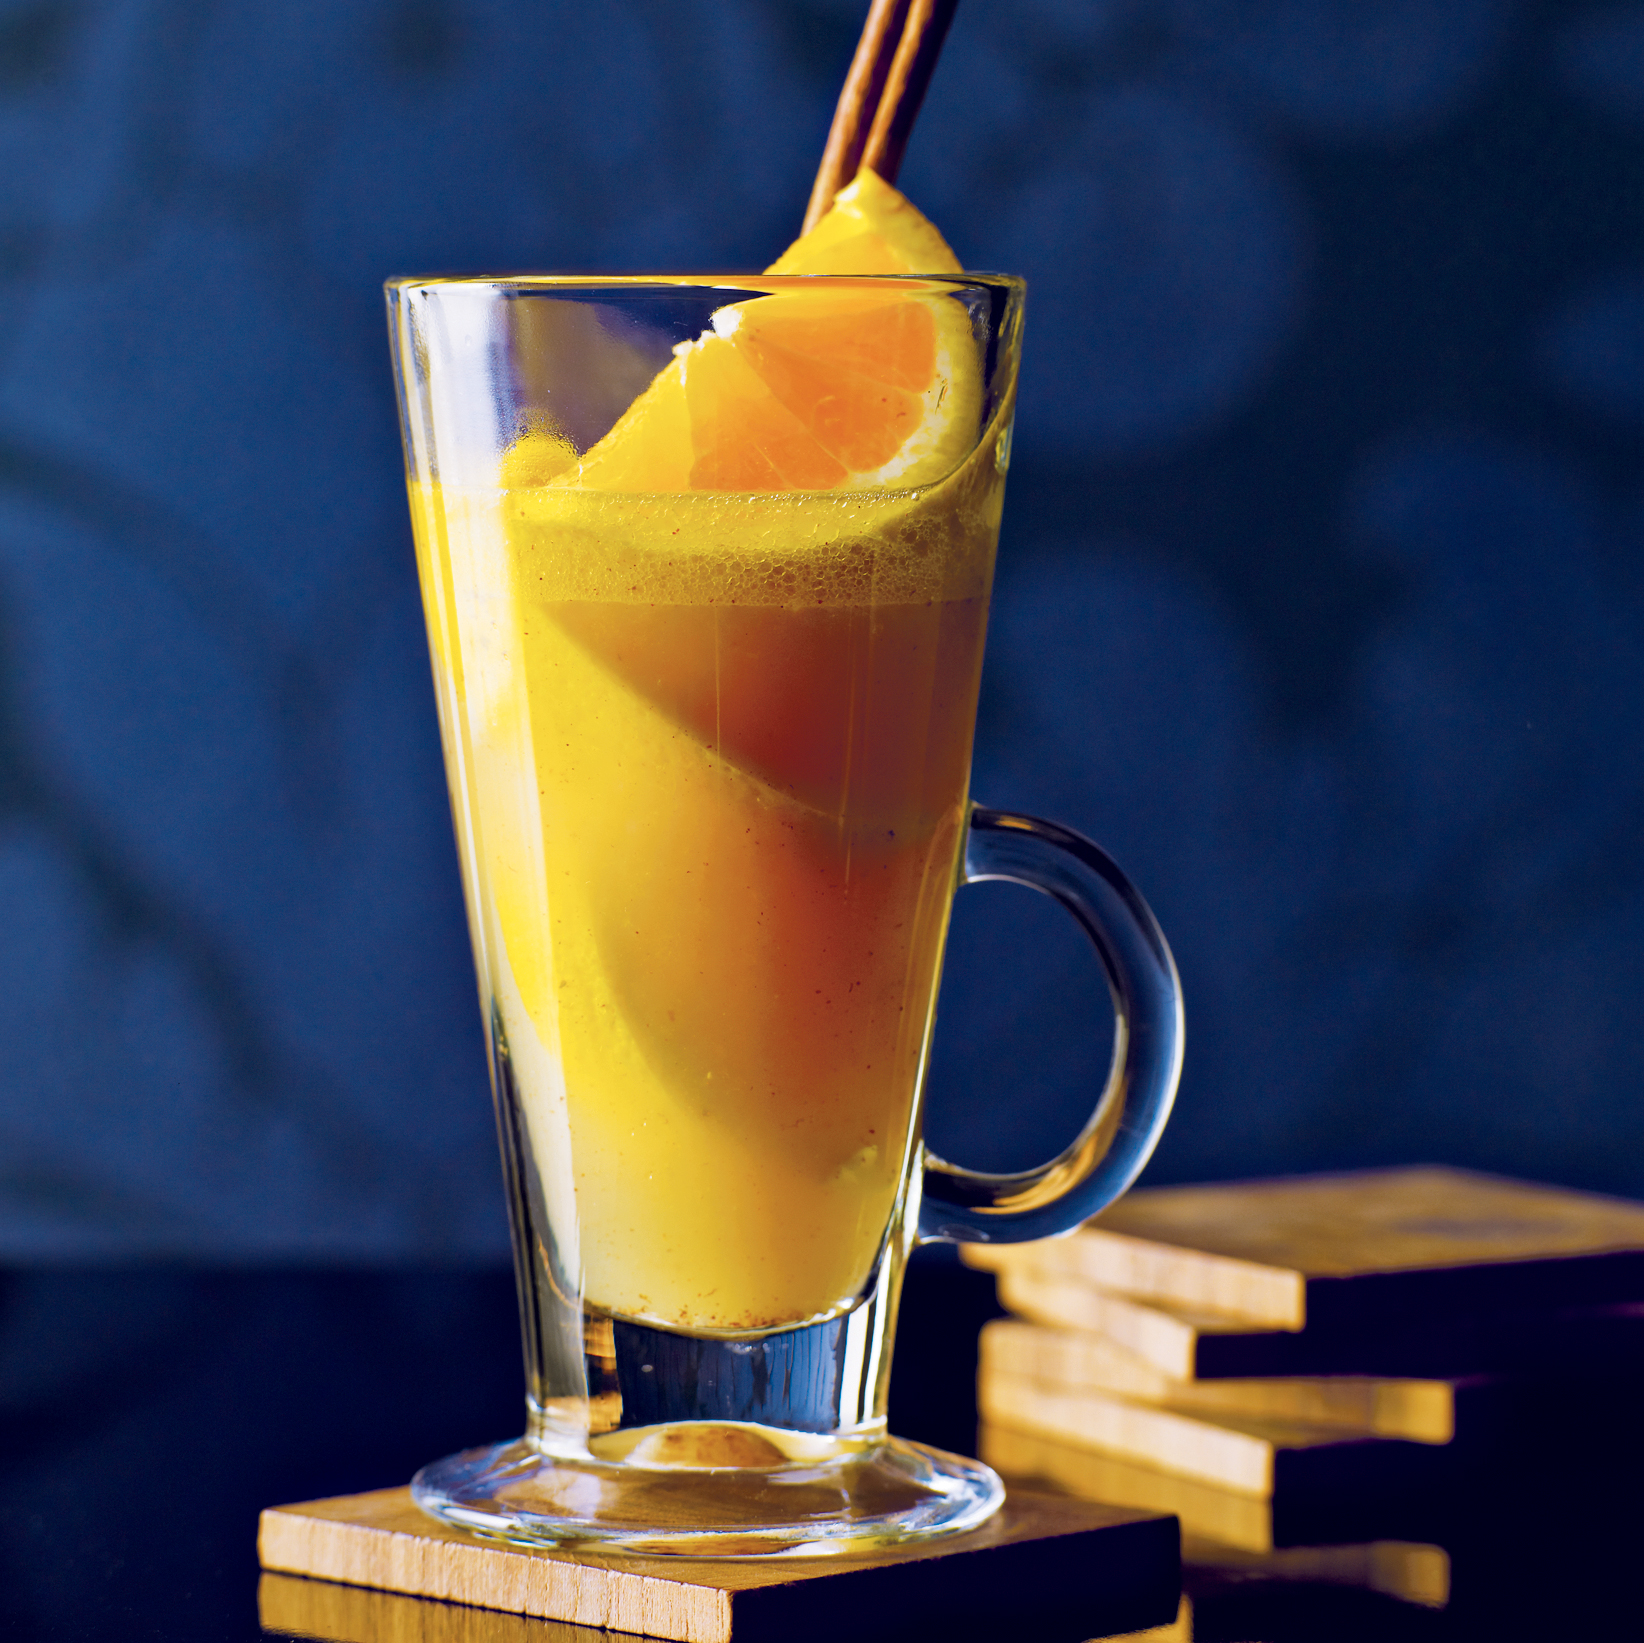 2010-r-cocktail-buttered-lemon.jpg